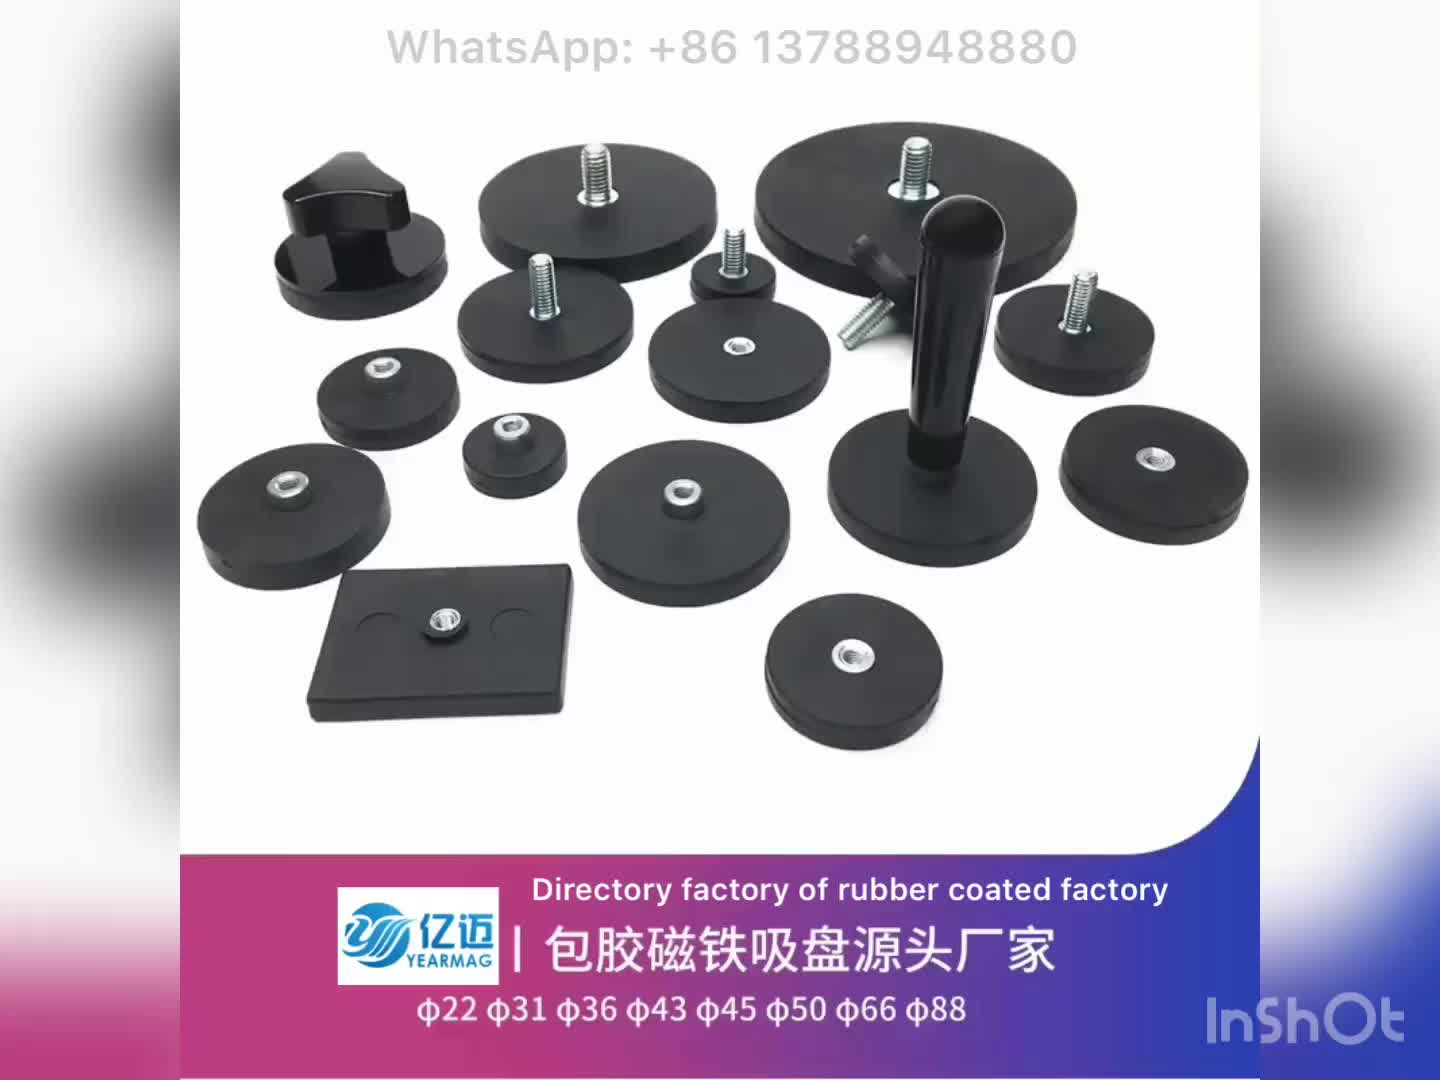 Direct Factory Cheap Price Wholesale Neodymium Magnetic Holder D88mm Rubber Coated Pot Magnets with Screw Threaded M5 M6 M8 M10